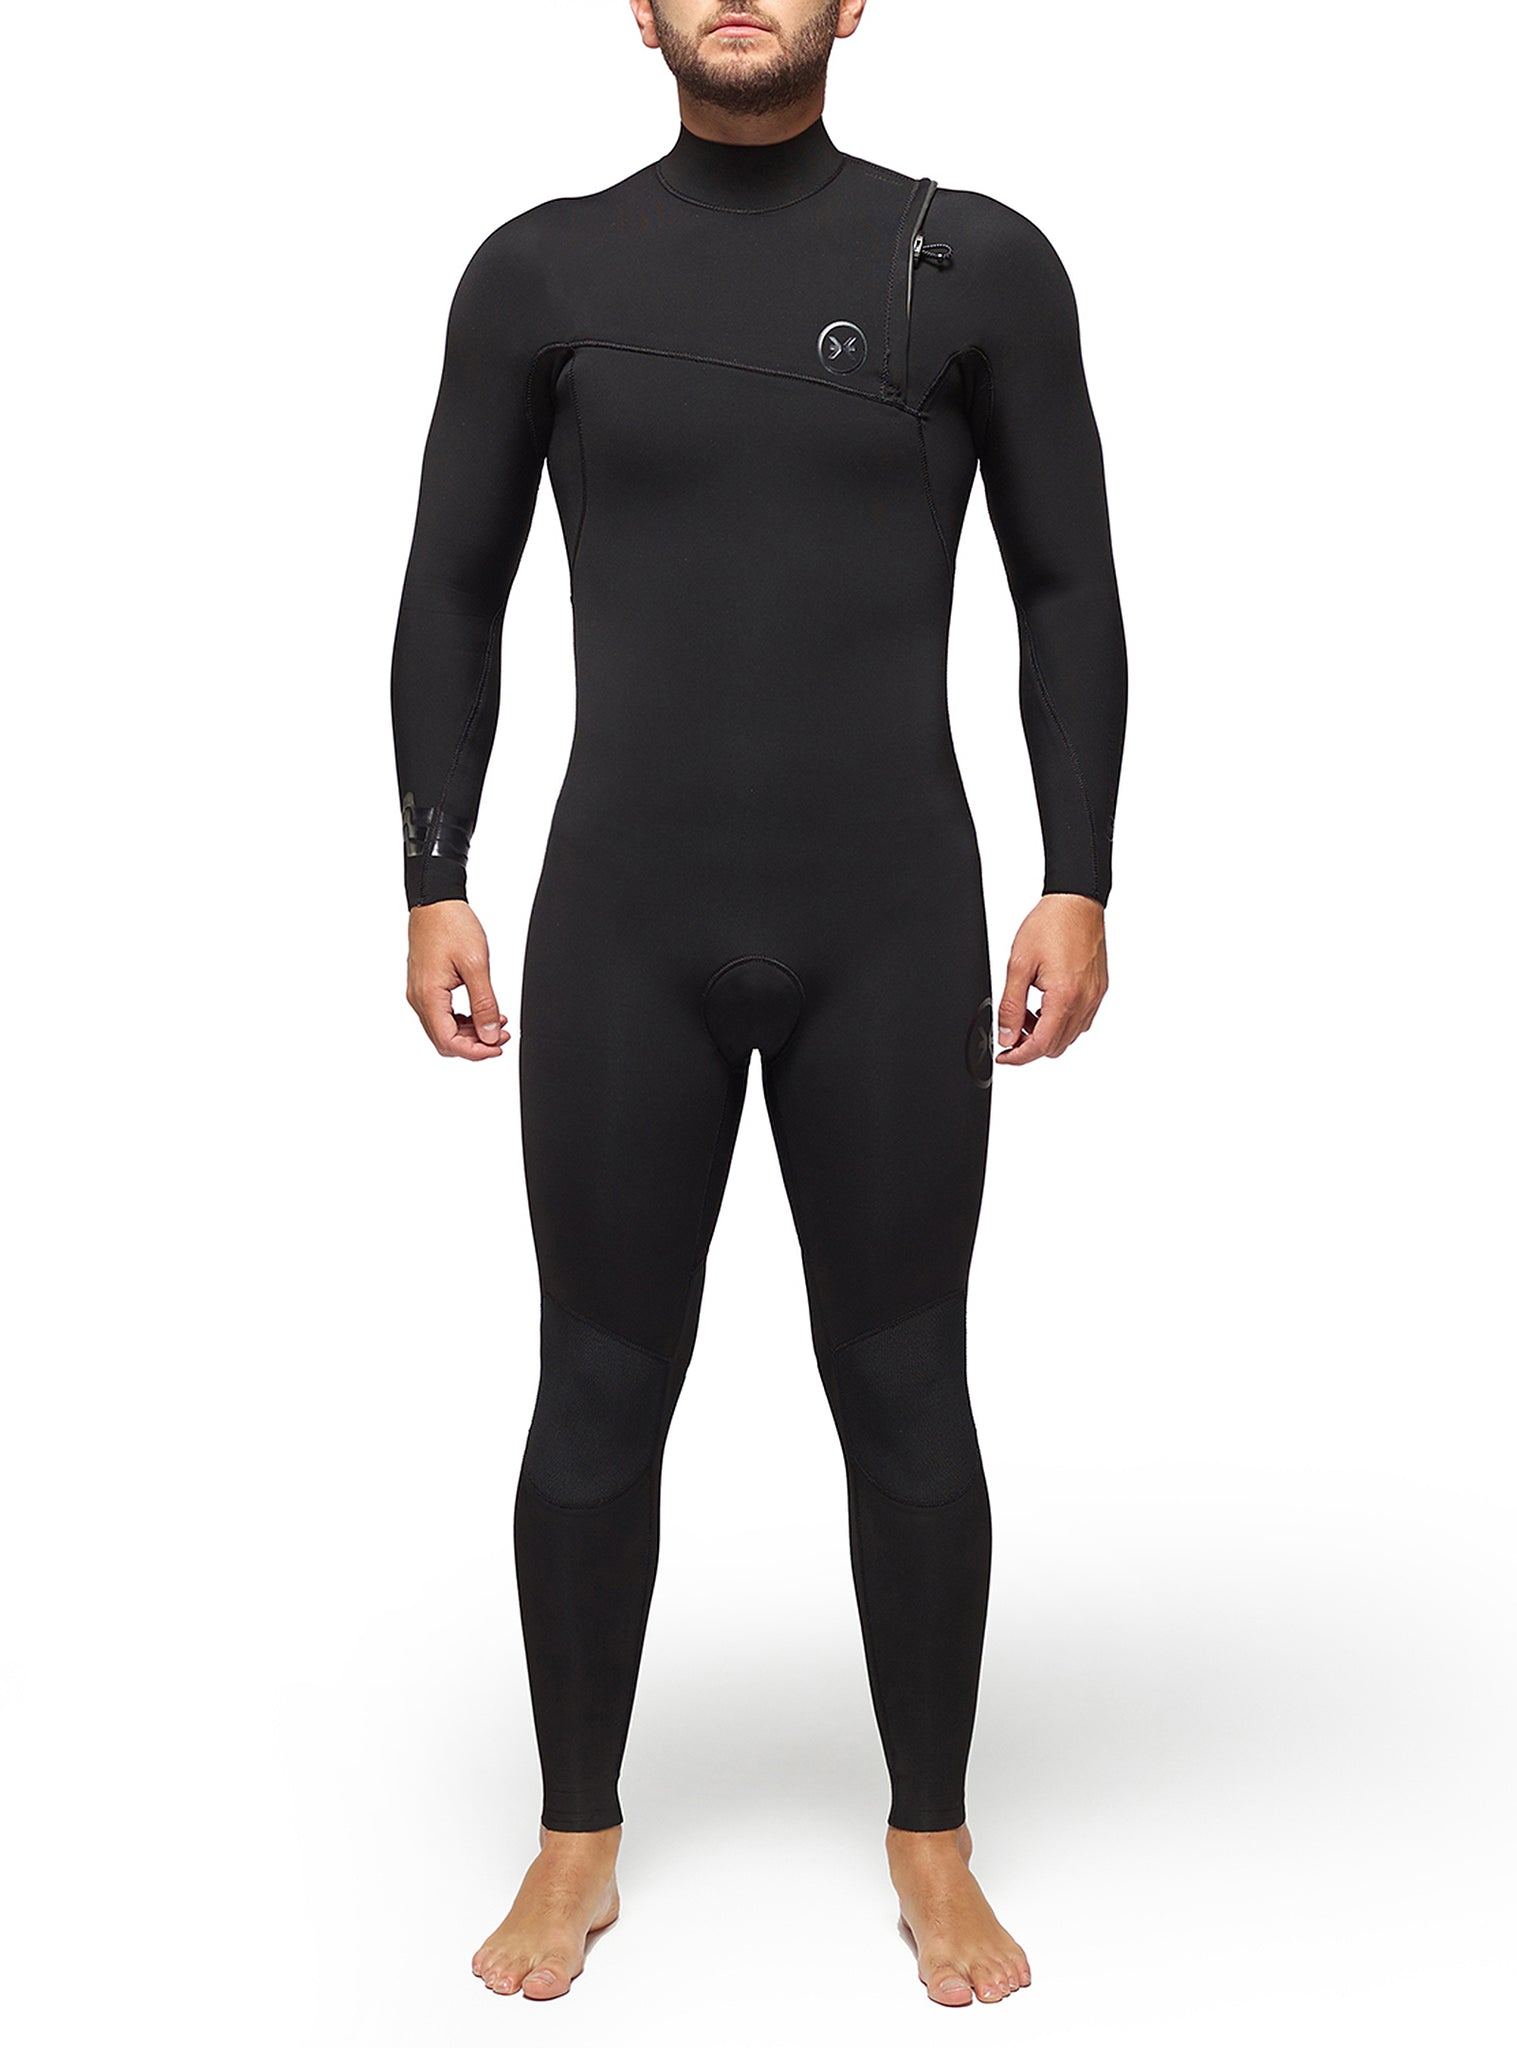 Wetsuit Man Competition 3/2 Zipperless Black